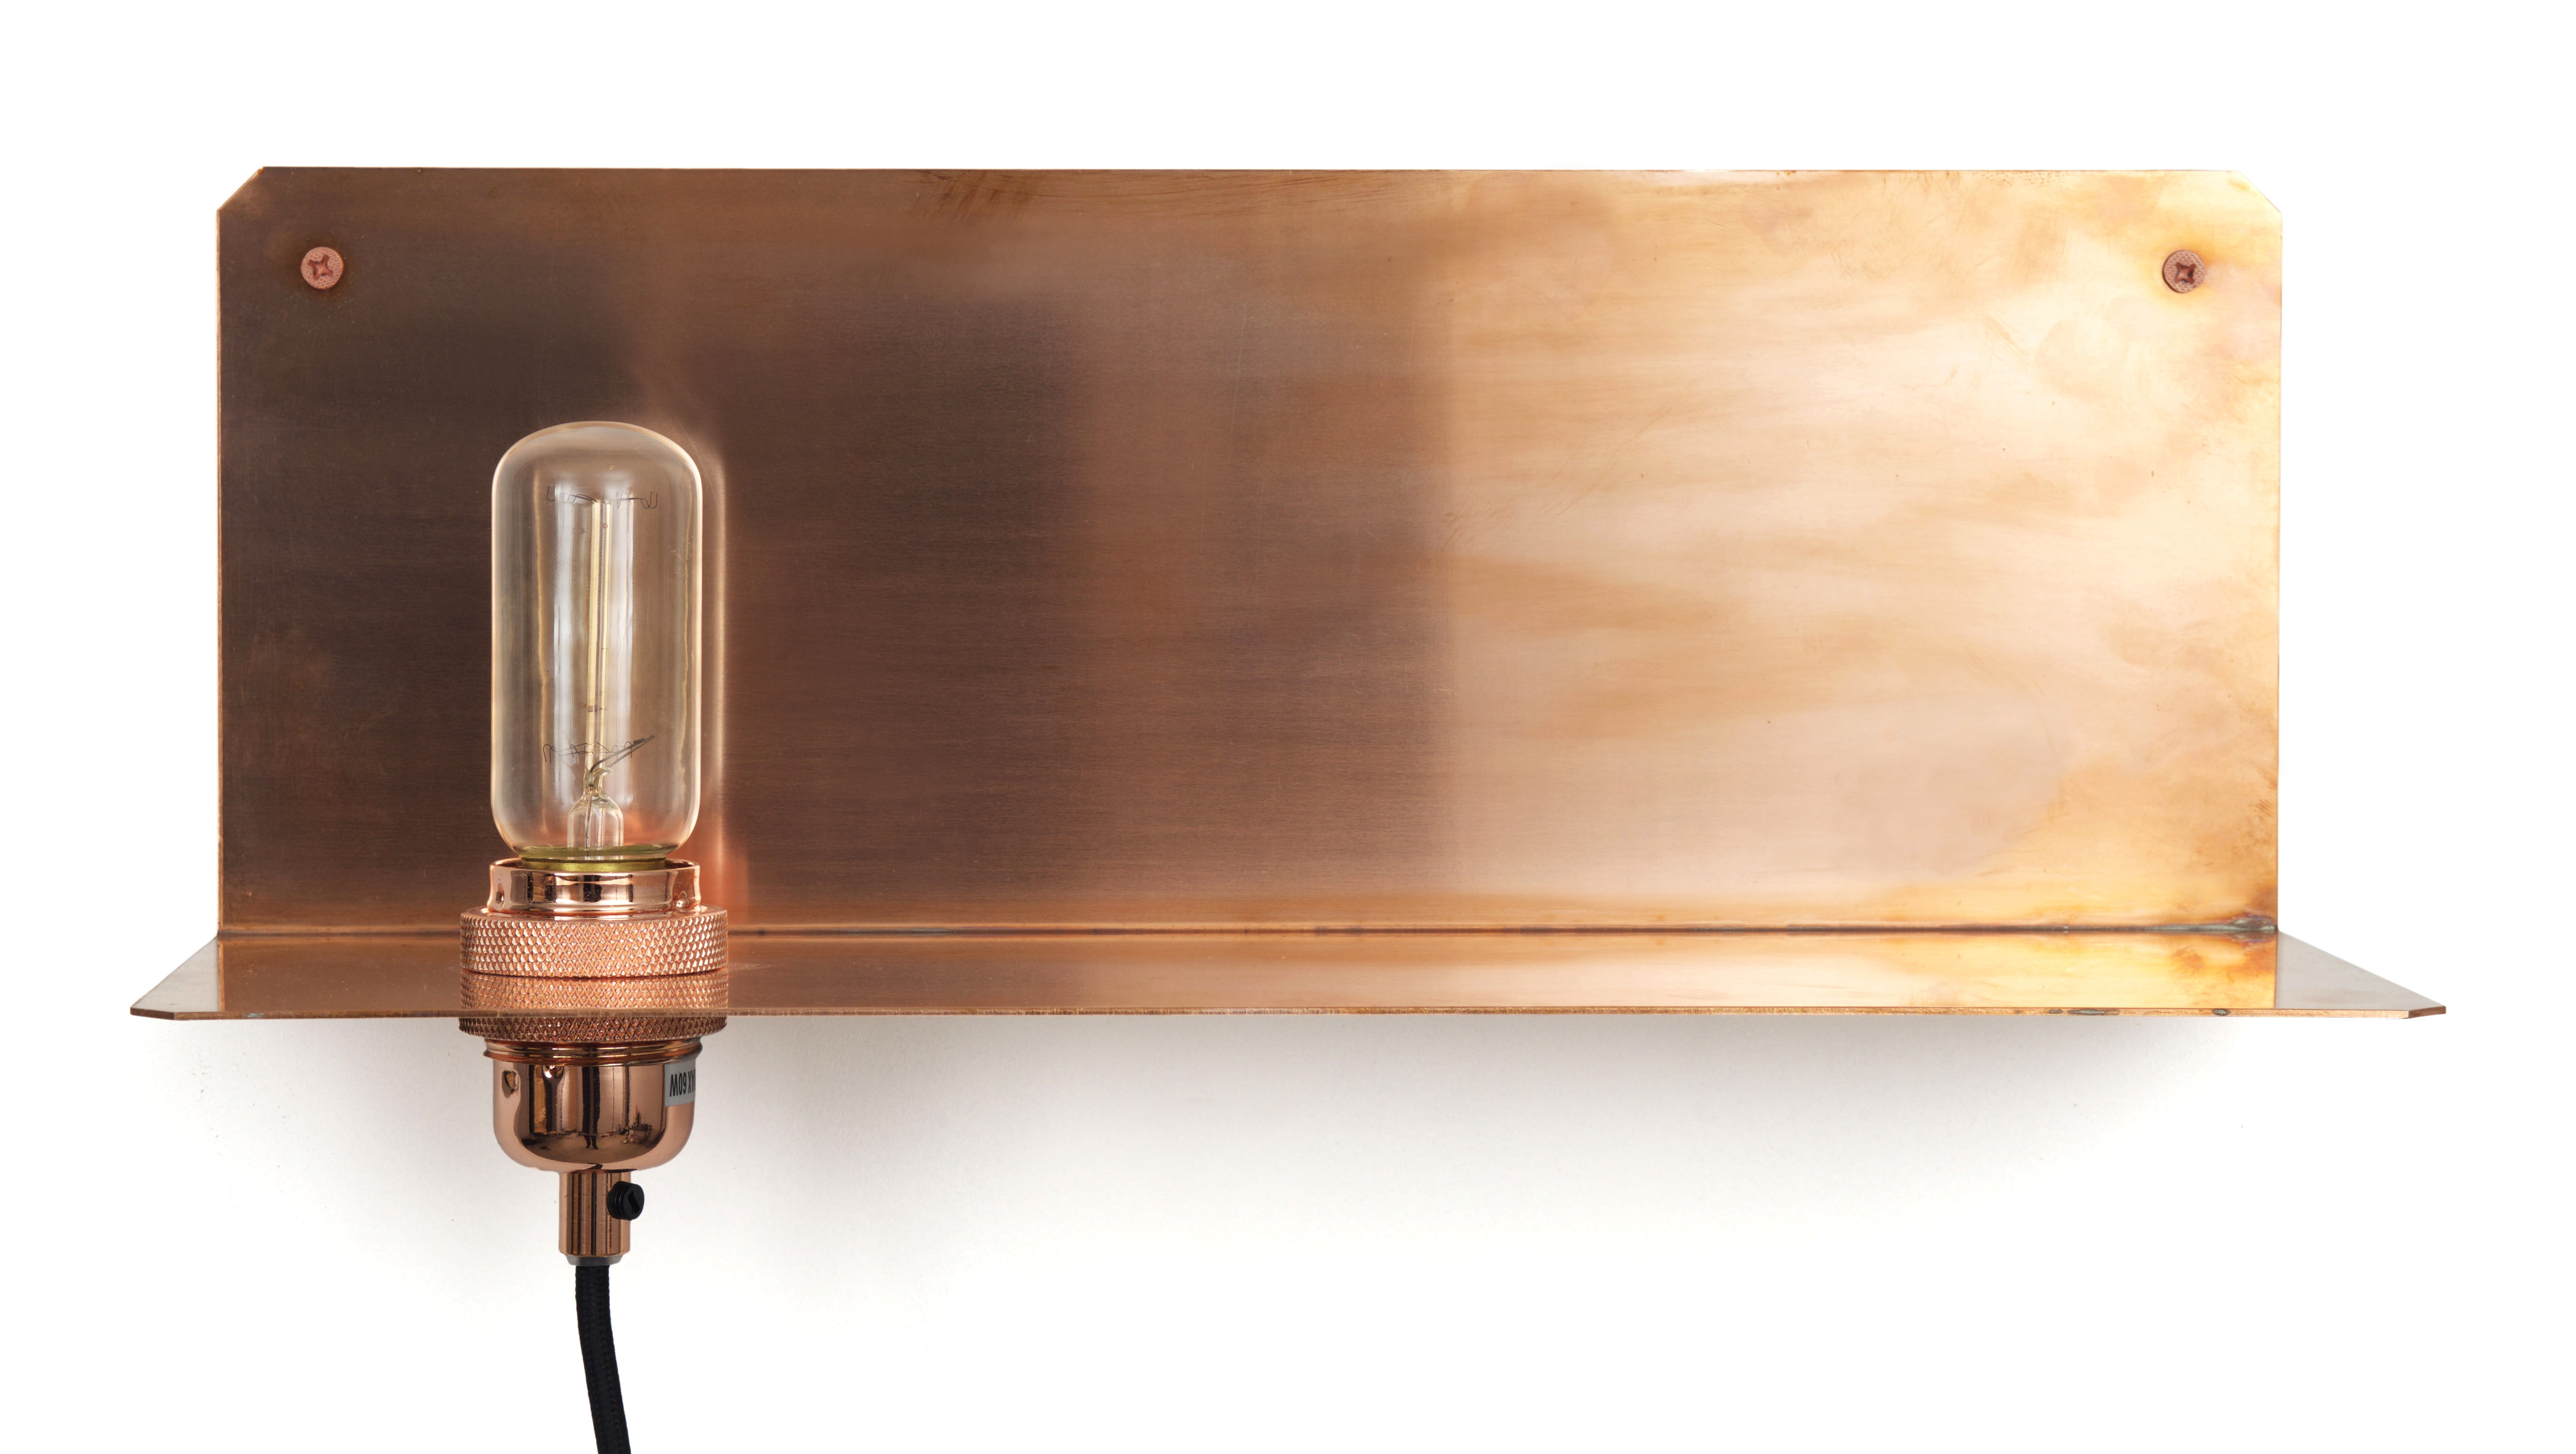 Furniture - Bookcases & Bookshelves - 90° Wall light with plug - Shelf by Frama  - Copper - Solid copper